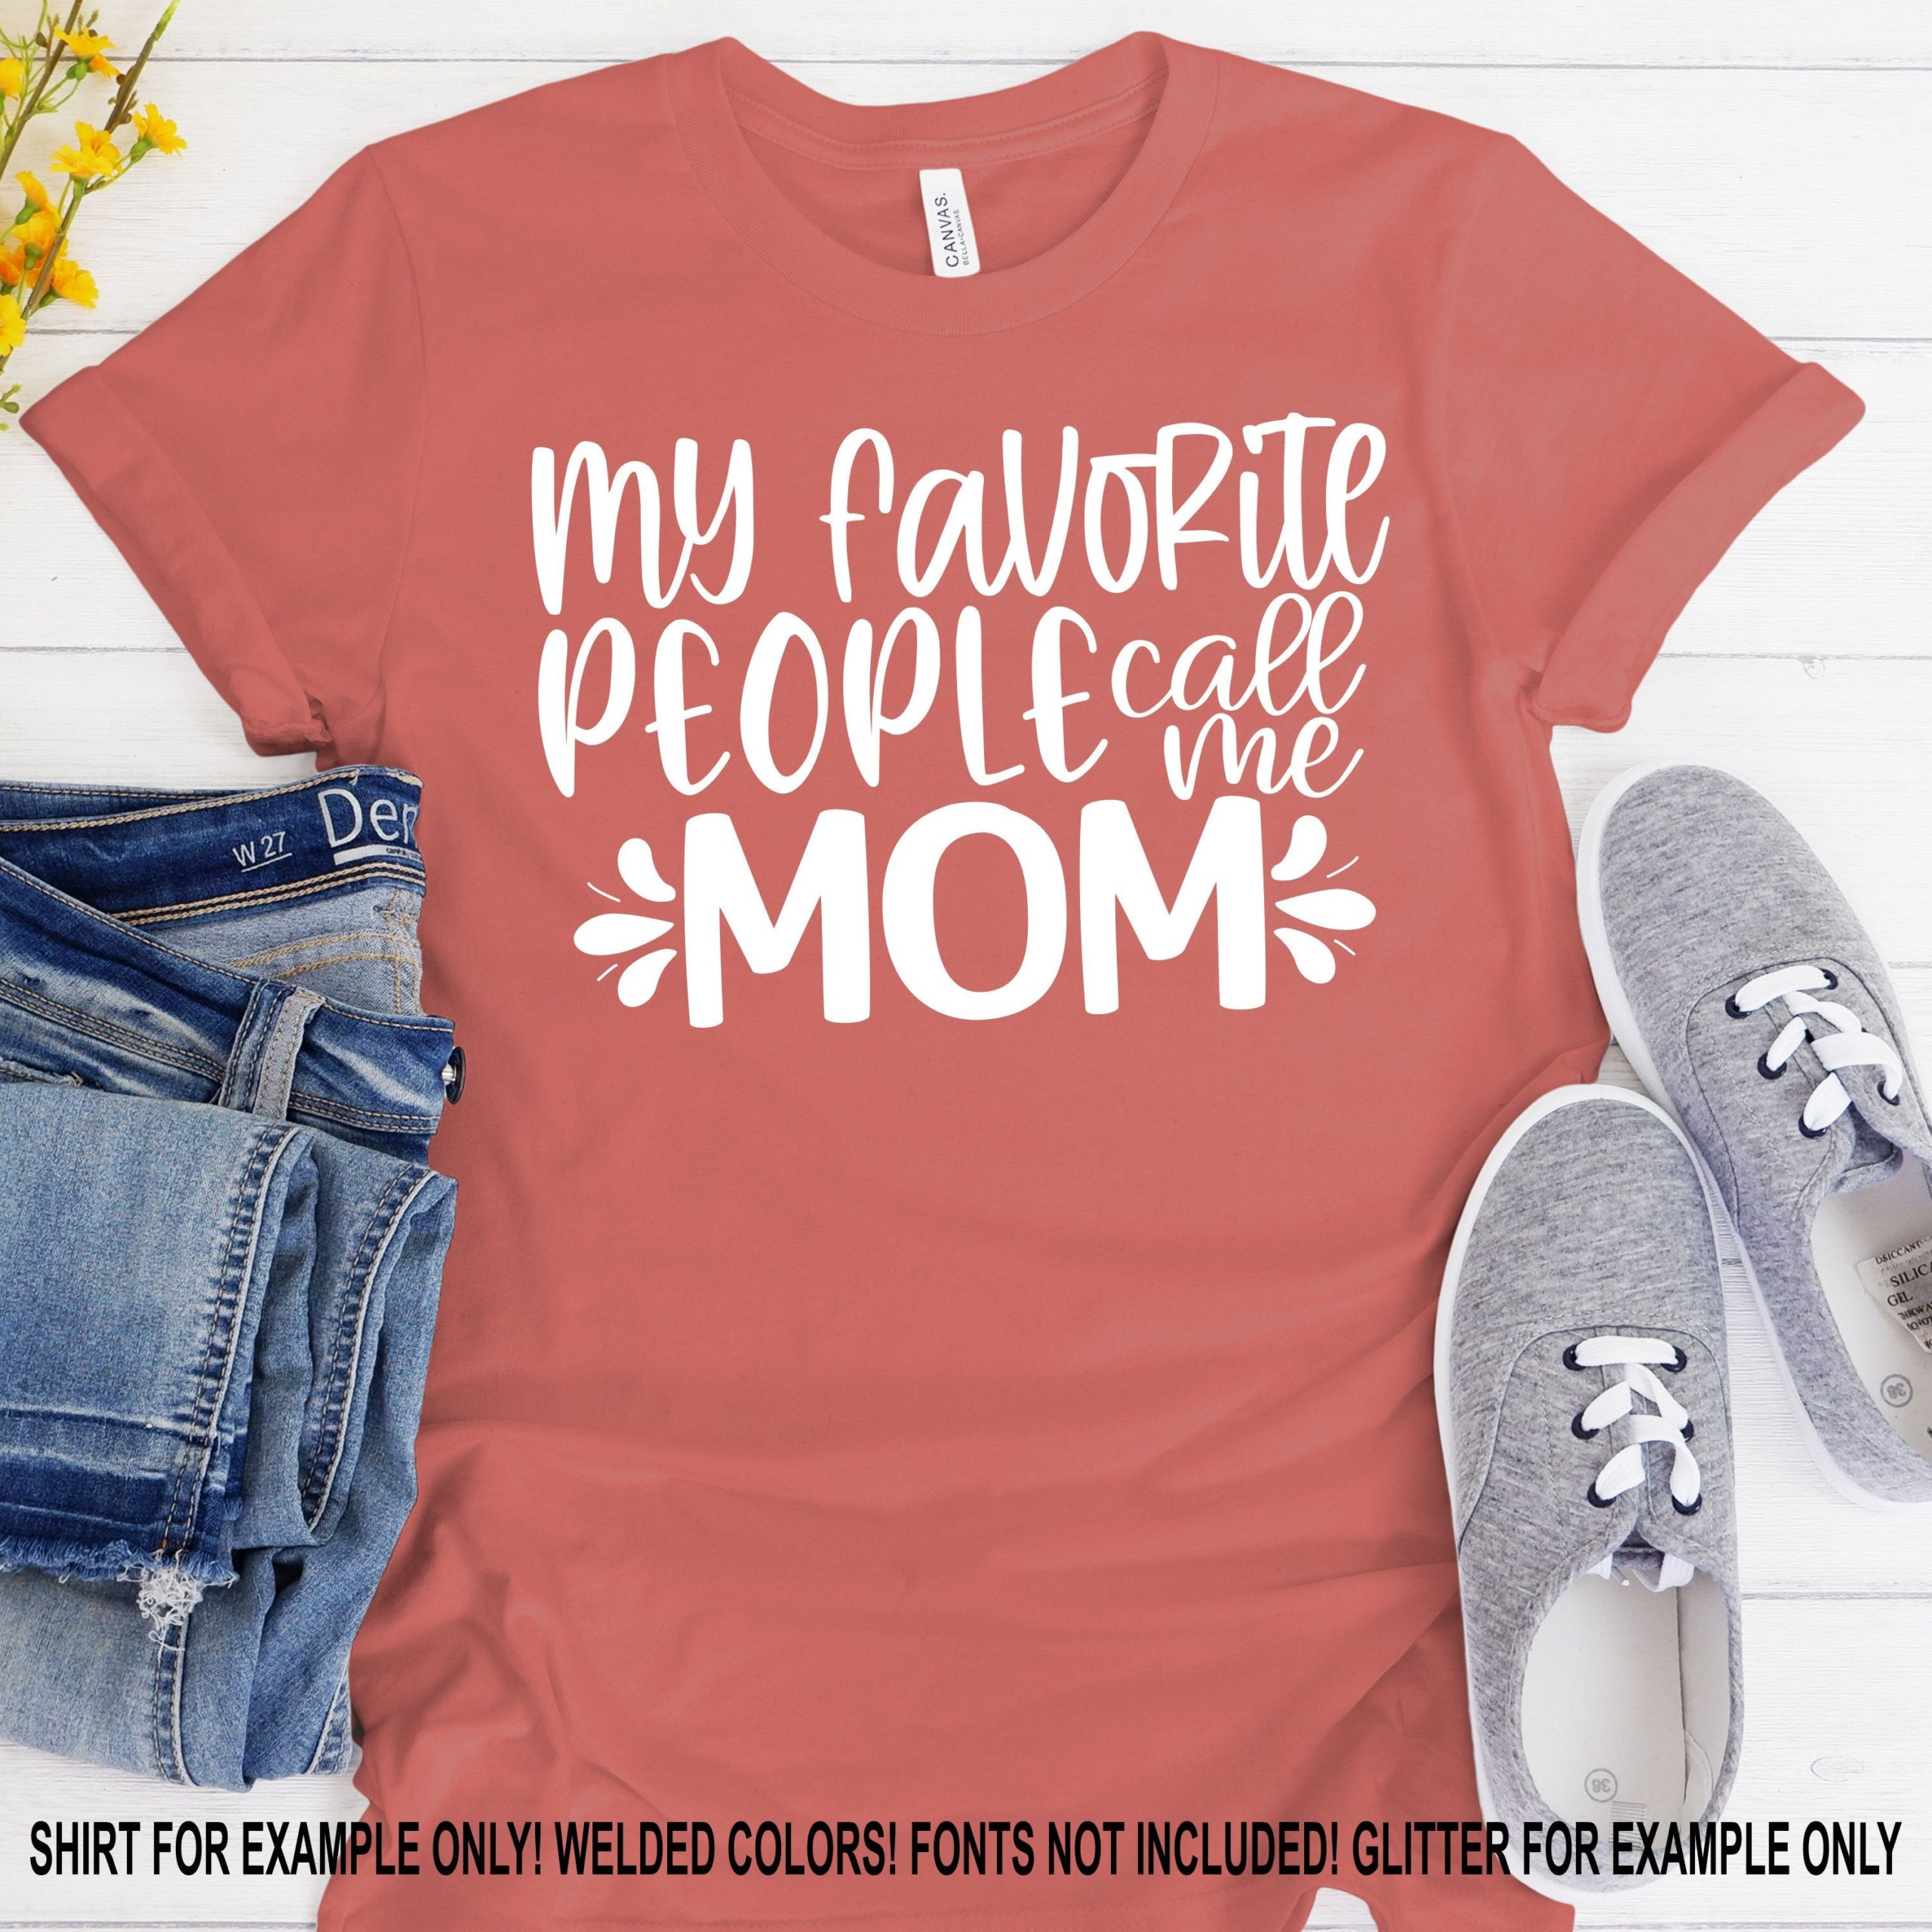 My-favorite-people-call-me-mom-svg-mothers-day-svg-happy-mothers-day-mom-svg-cuttable-svg-designs-cuttable-cut-file-cricut-svg-60512d02